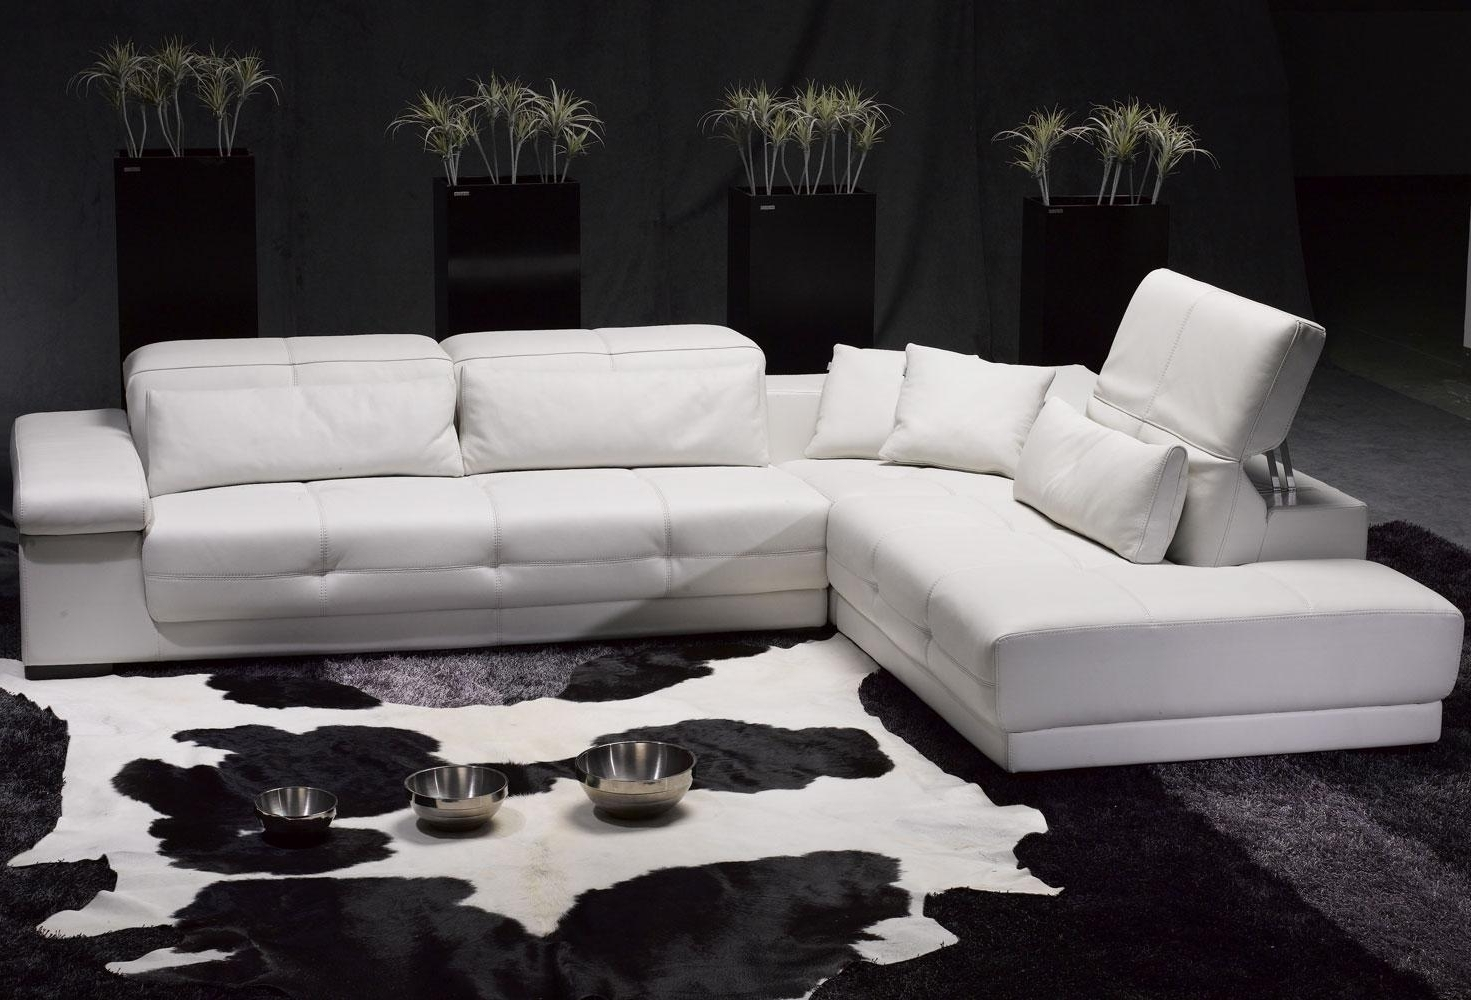 Fancy White Sectional Sofa 74 In Office Sofa Ideas With White With Well Known White Sectional Sofas (View 11 of 15)